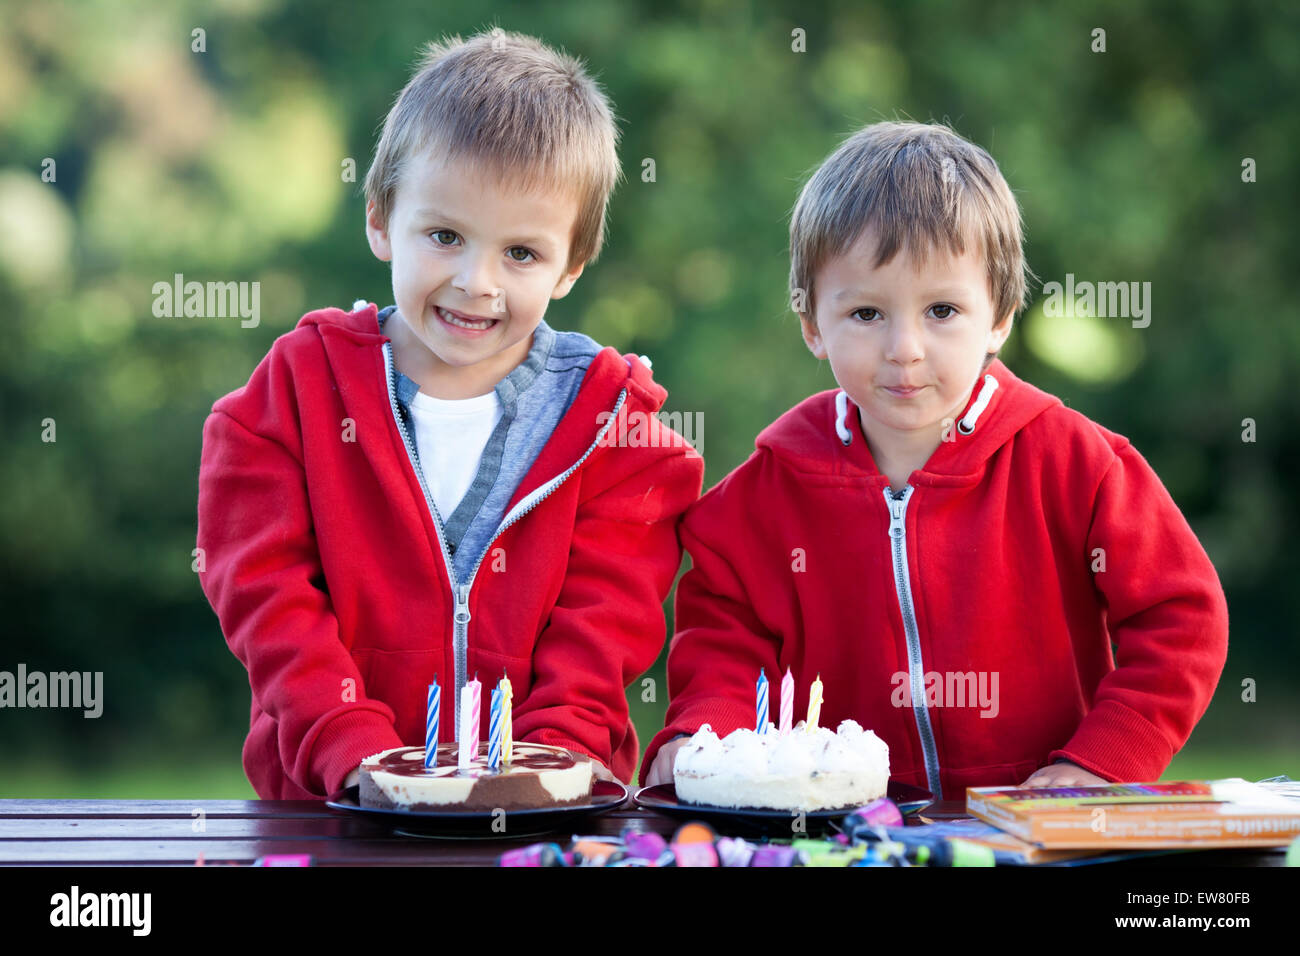 Two adorable boys with cakes, outdoor, celebrating birthday, having fun - Stock Image